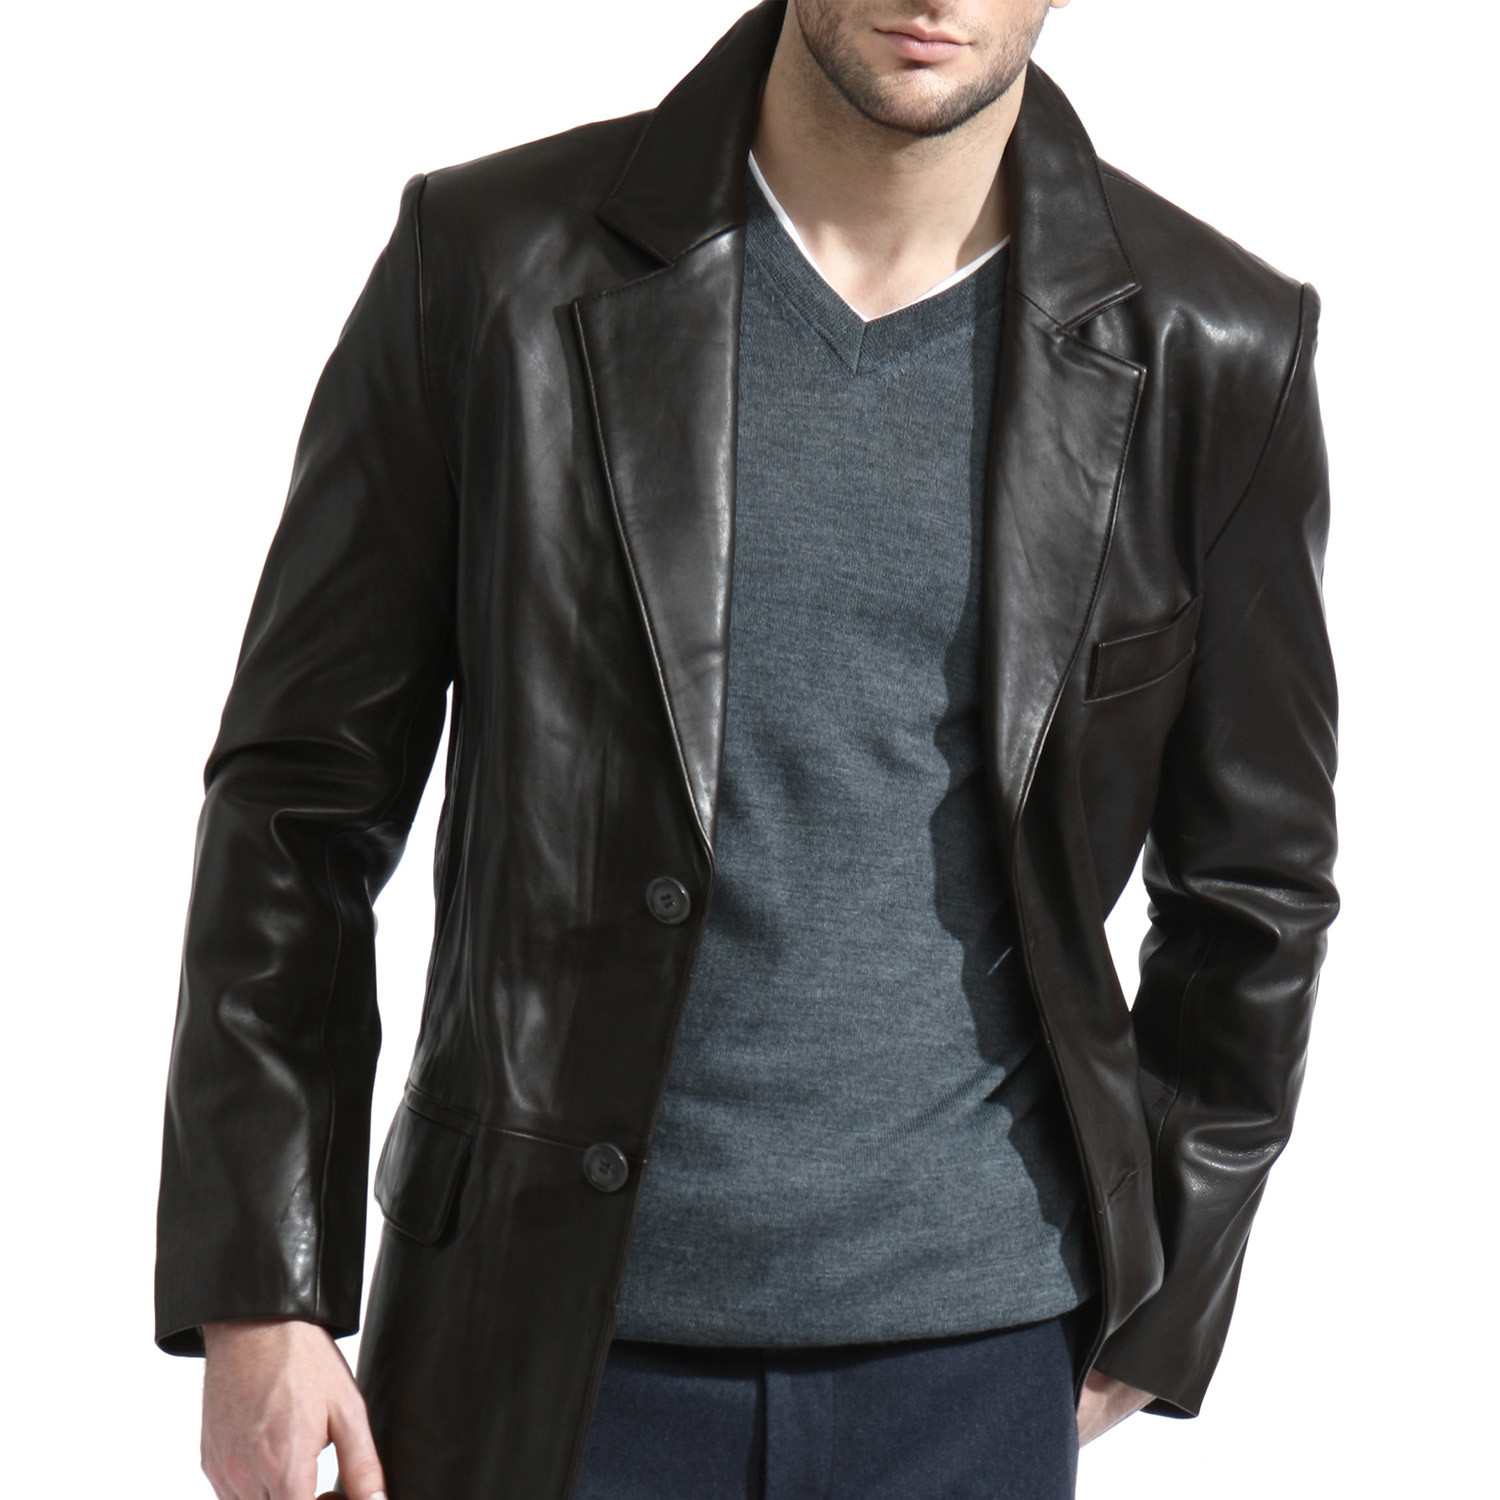 The Leather Sports Jacket/mens Leather Blazer/leather Jacket Casual/leather  Jacket Office And Party Wear , Buy Red Leather Blazer,Mens Leather